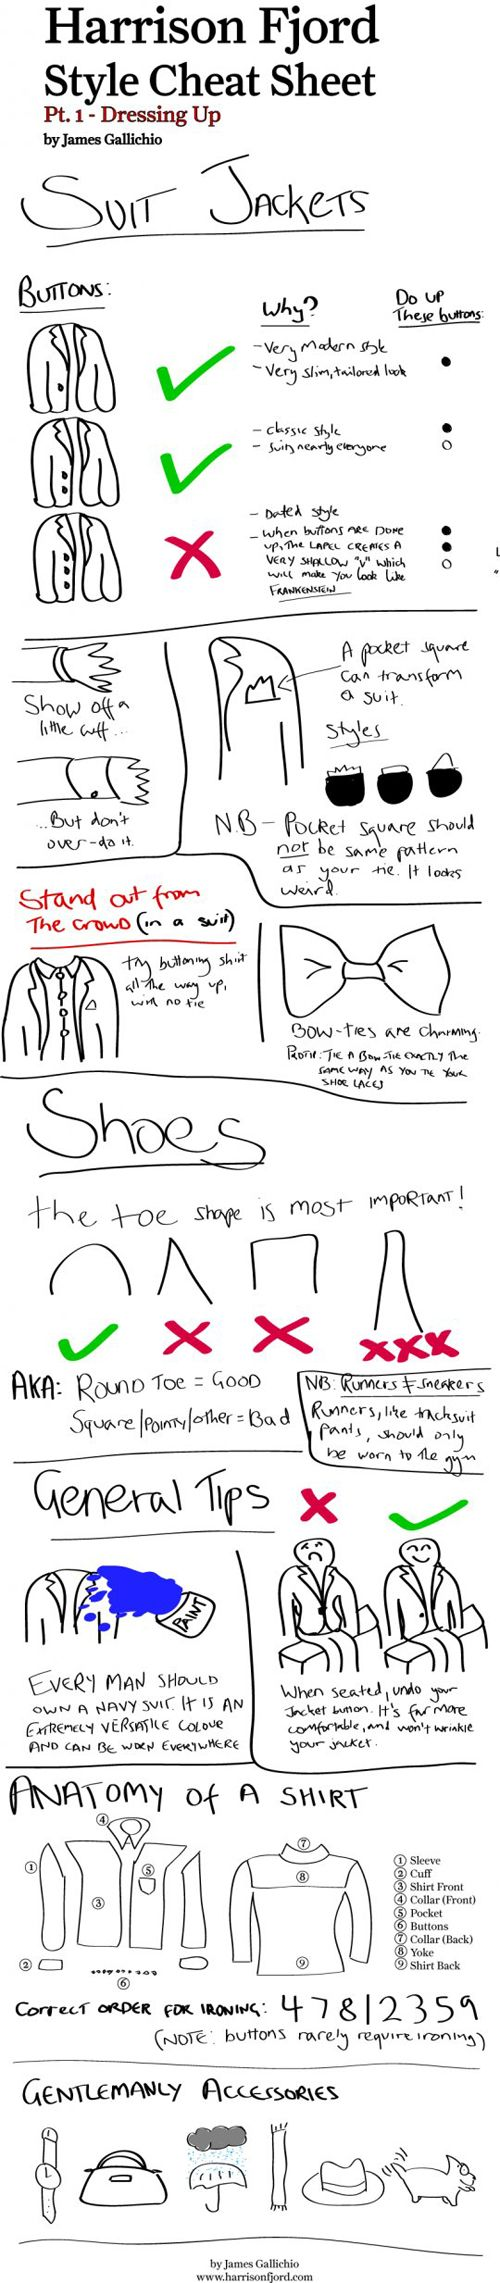 A Gentleman's Style Cheat Sheet presented by Harrison Fjord (Pic) | Daily Dawdle